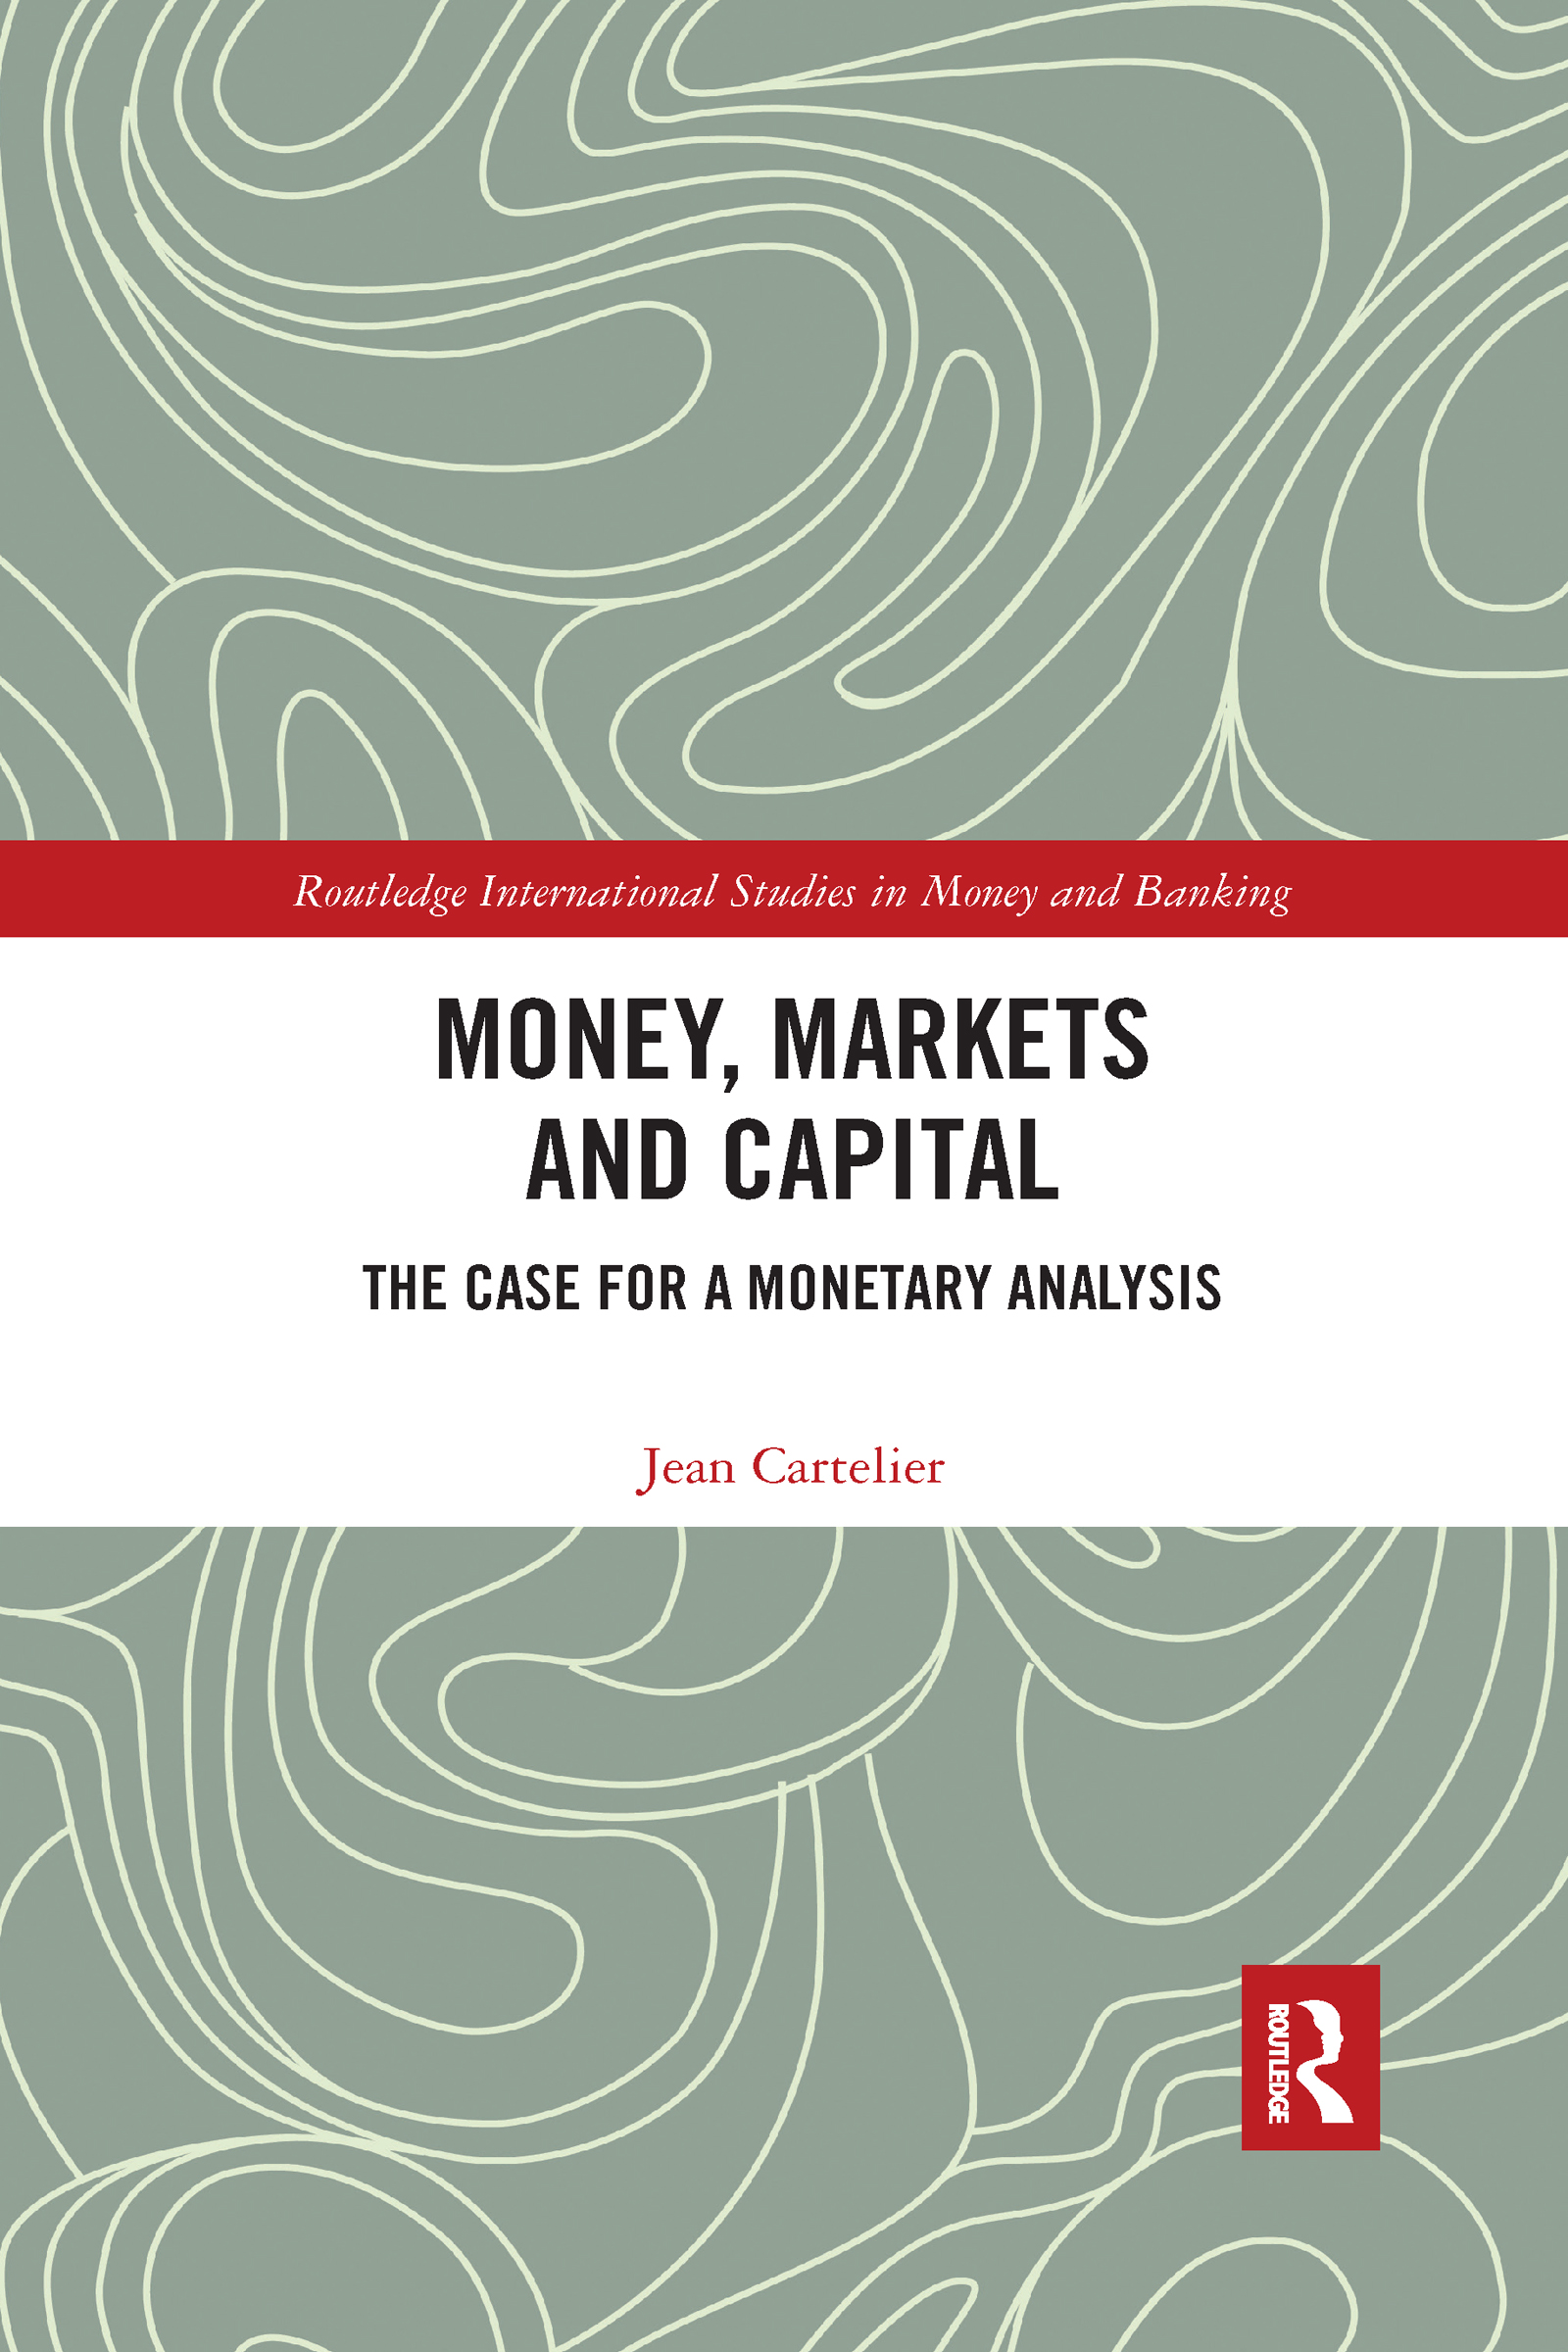 Money, Markets and Capital